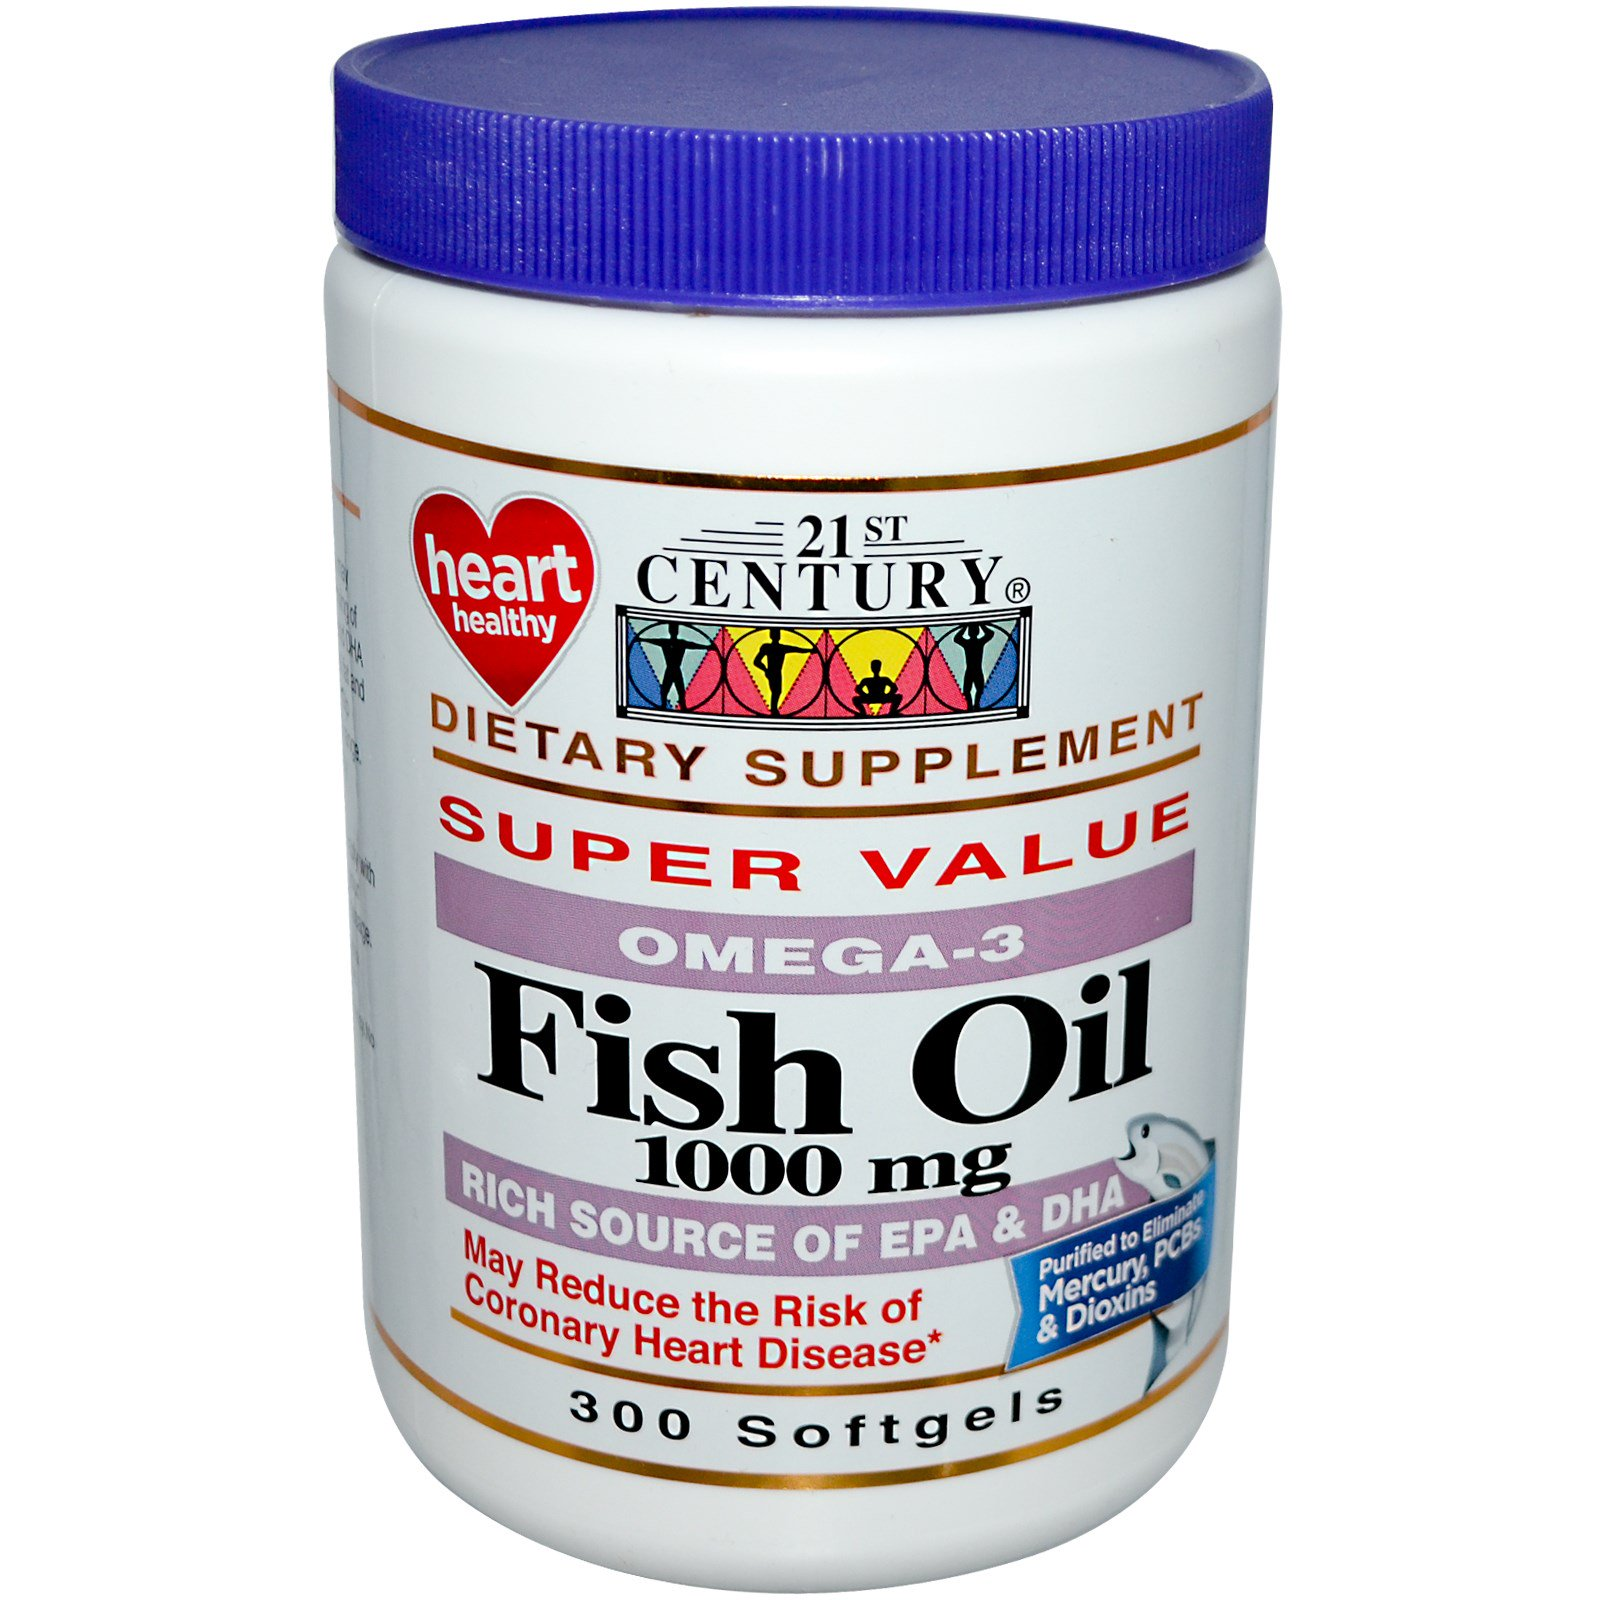 21st century fish oil omega 3 1000 mg 300 softgels for Fish oil 1000 mg